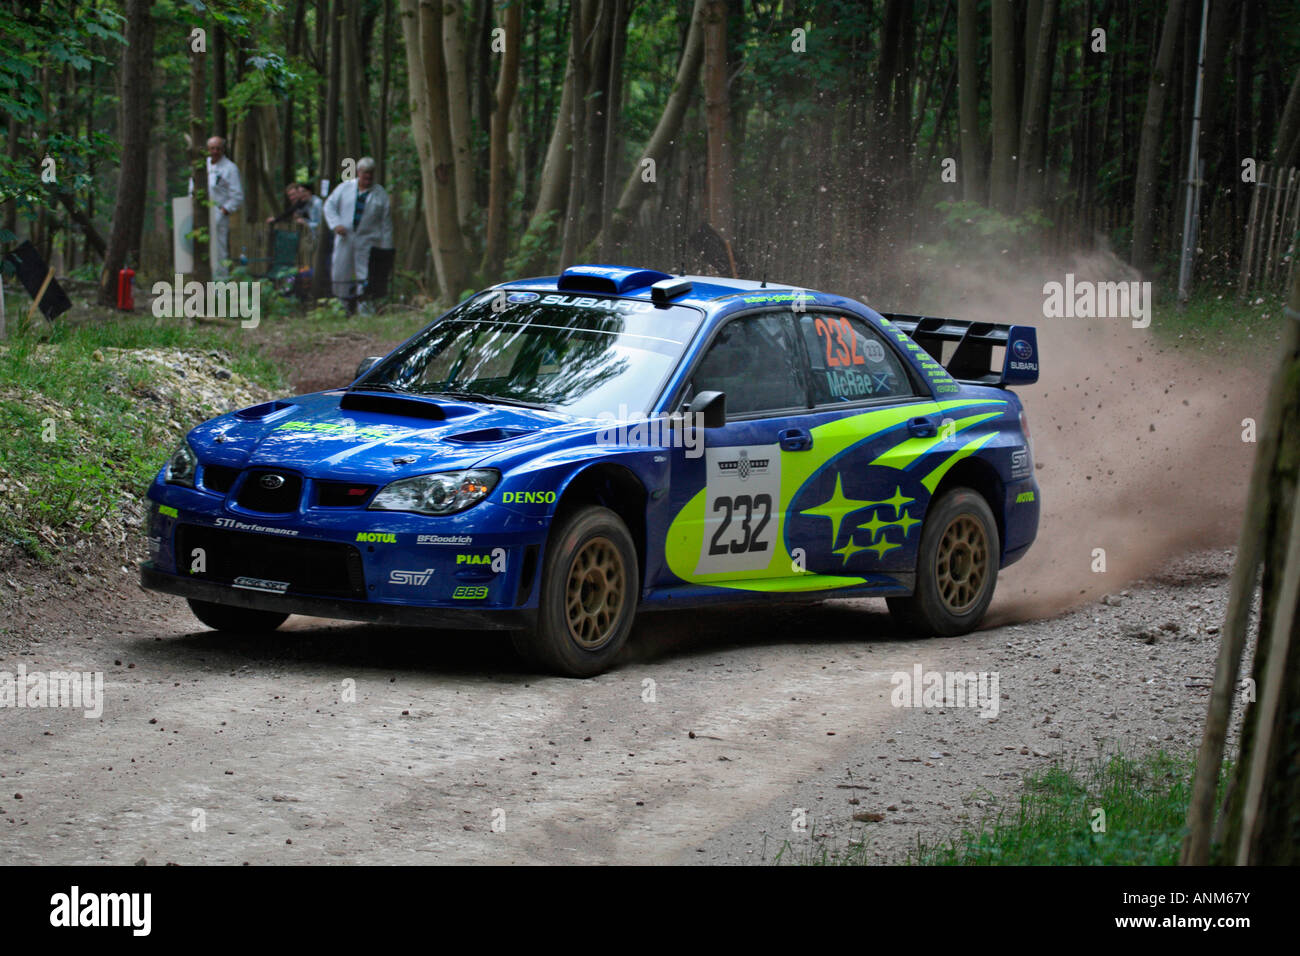 Colin McRae Subaru Impreza Rally Car Powering Round A Corner On The